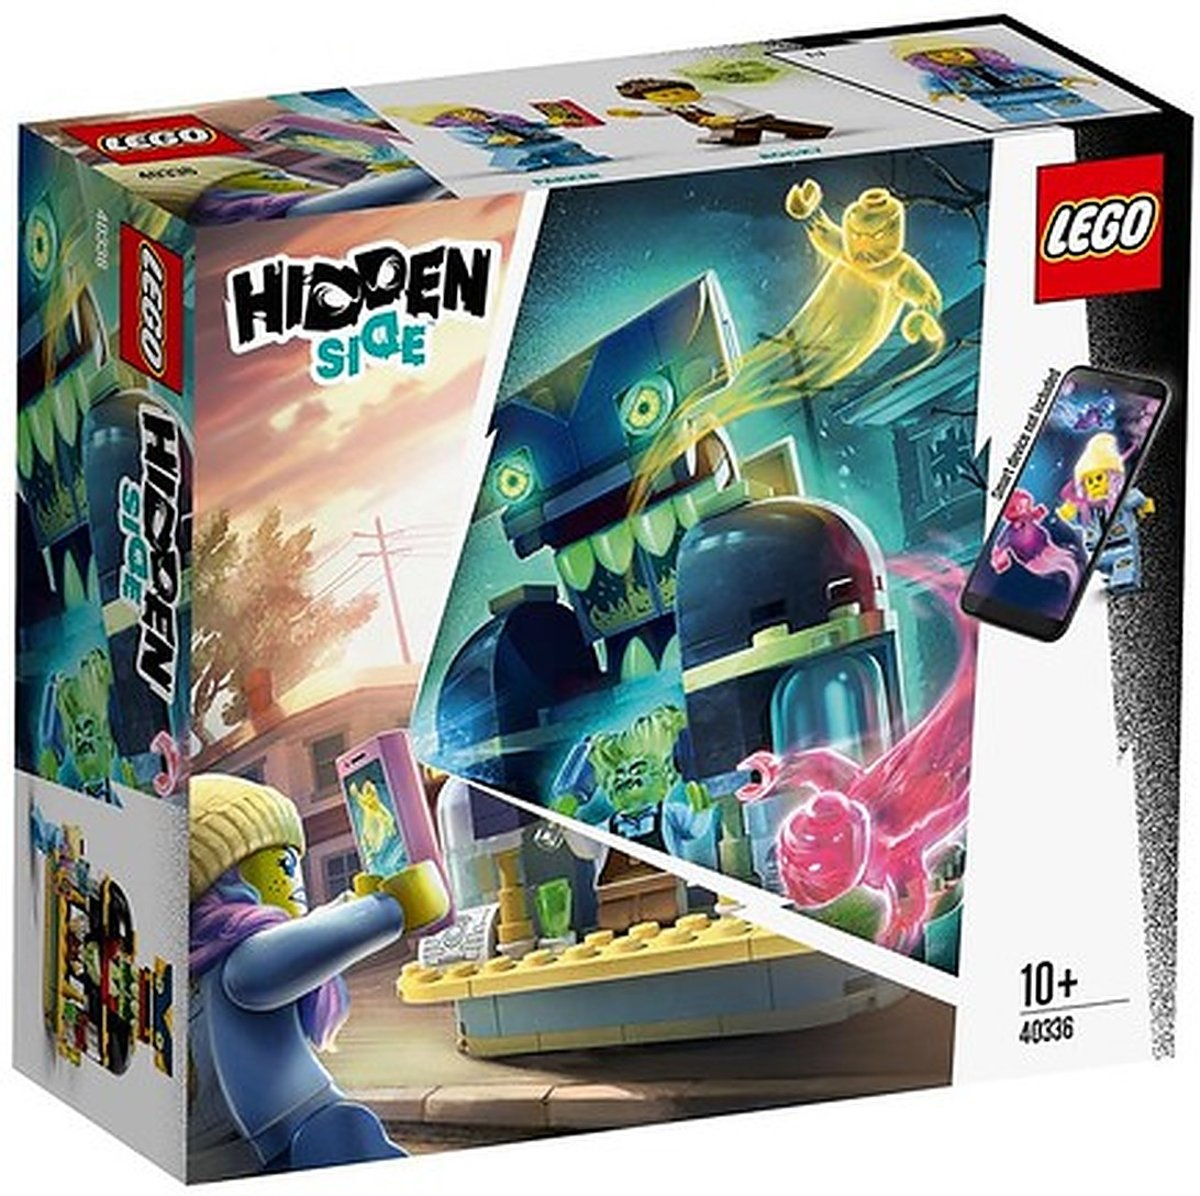 LEGO Hidden Side Newbury Juice Bar - 40336